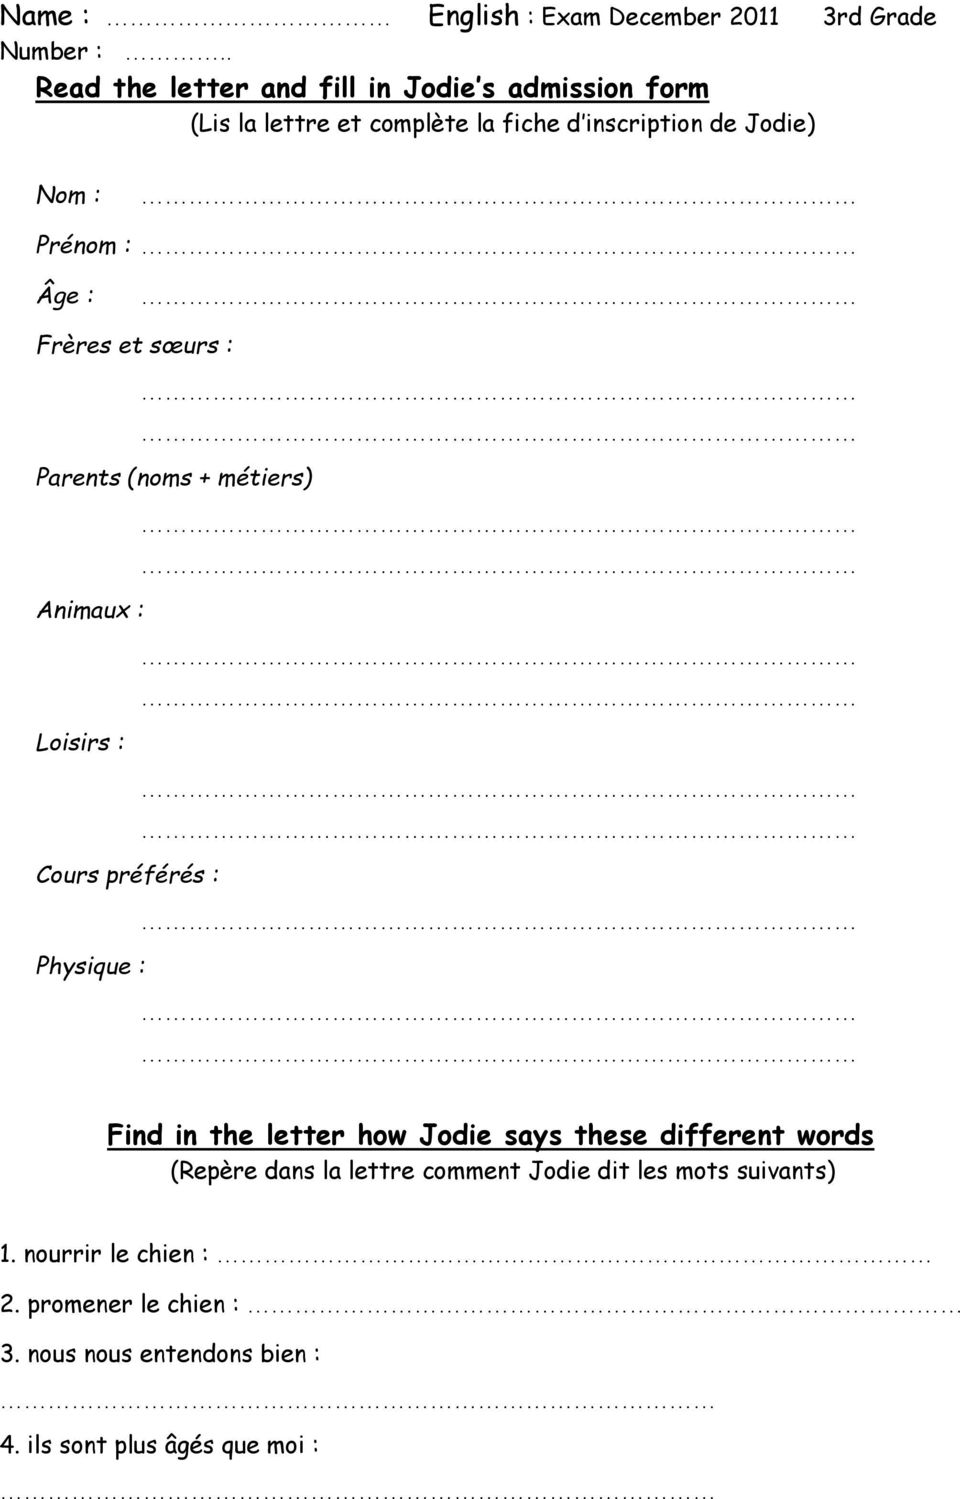 Find in the letter how Jodie says these different words (Repère dans la lettre comment Jodie dit les mots